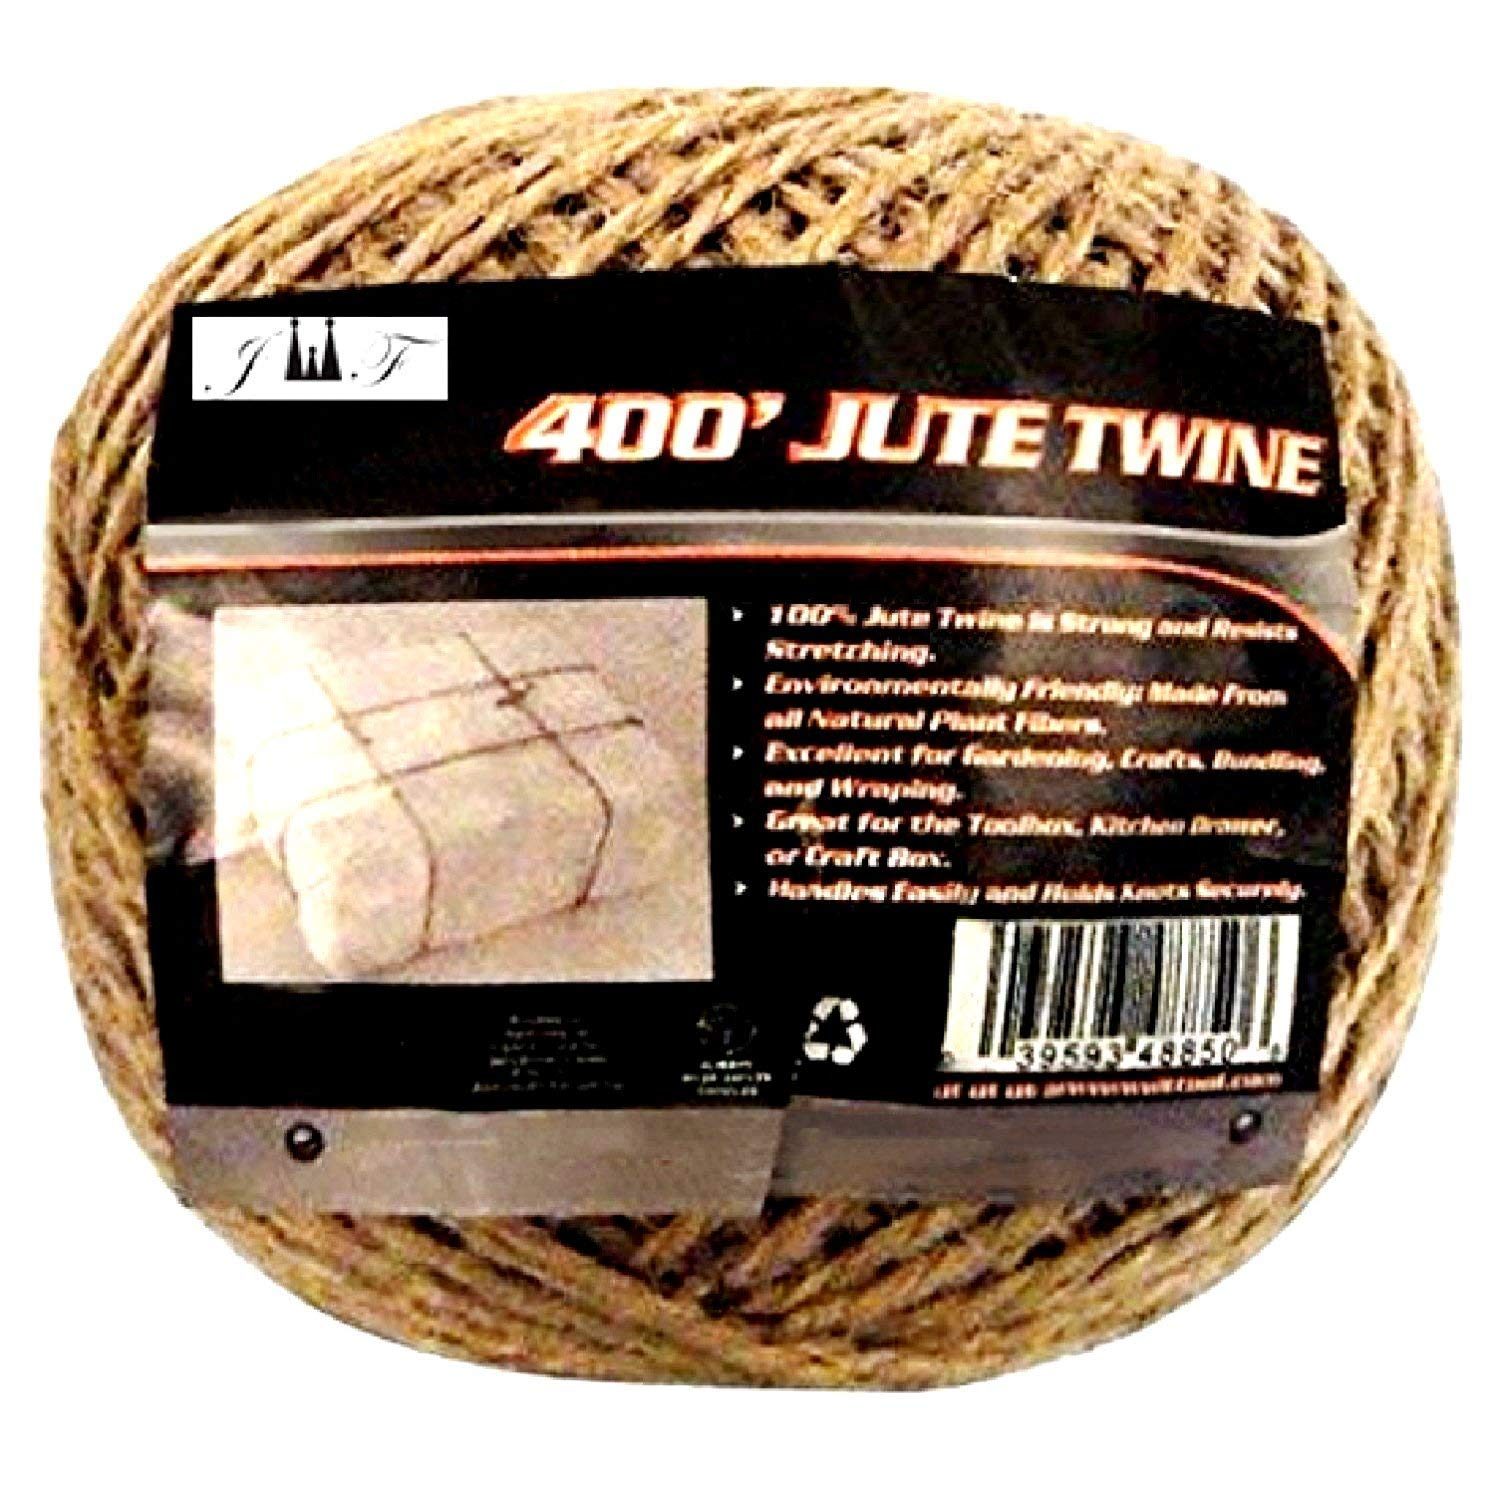 400Ft Brown Jute Twine-Strong,Heavy Duuty, Durable,Natural, Biodegradable-for Industrial, Packaging, Arts& Crafts, Hobby, Gifts, Decoration, Bundling, Gardening &Home Use